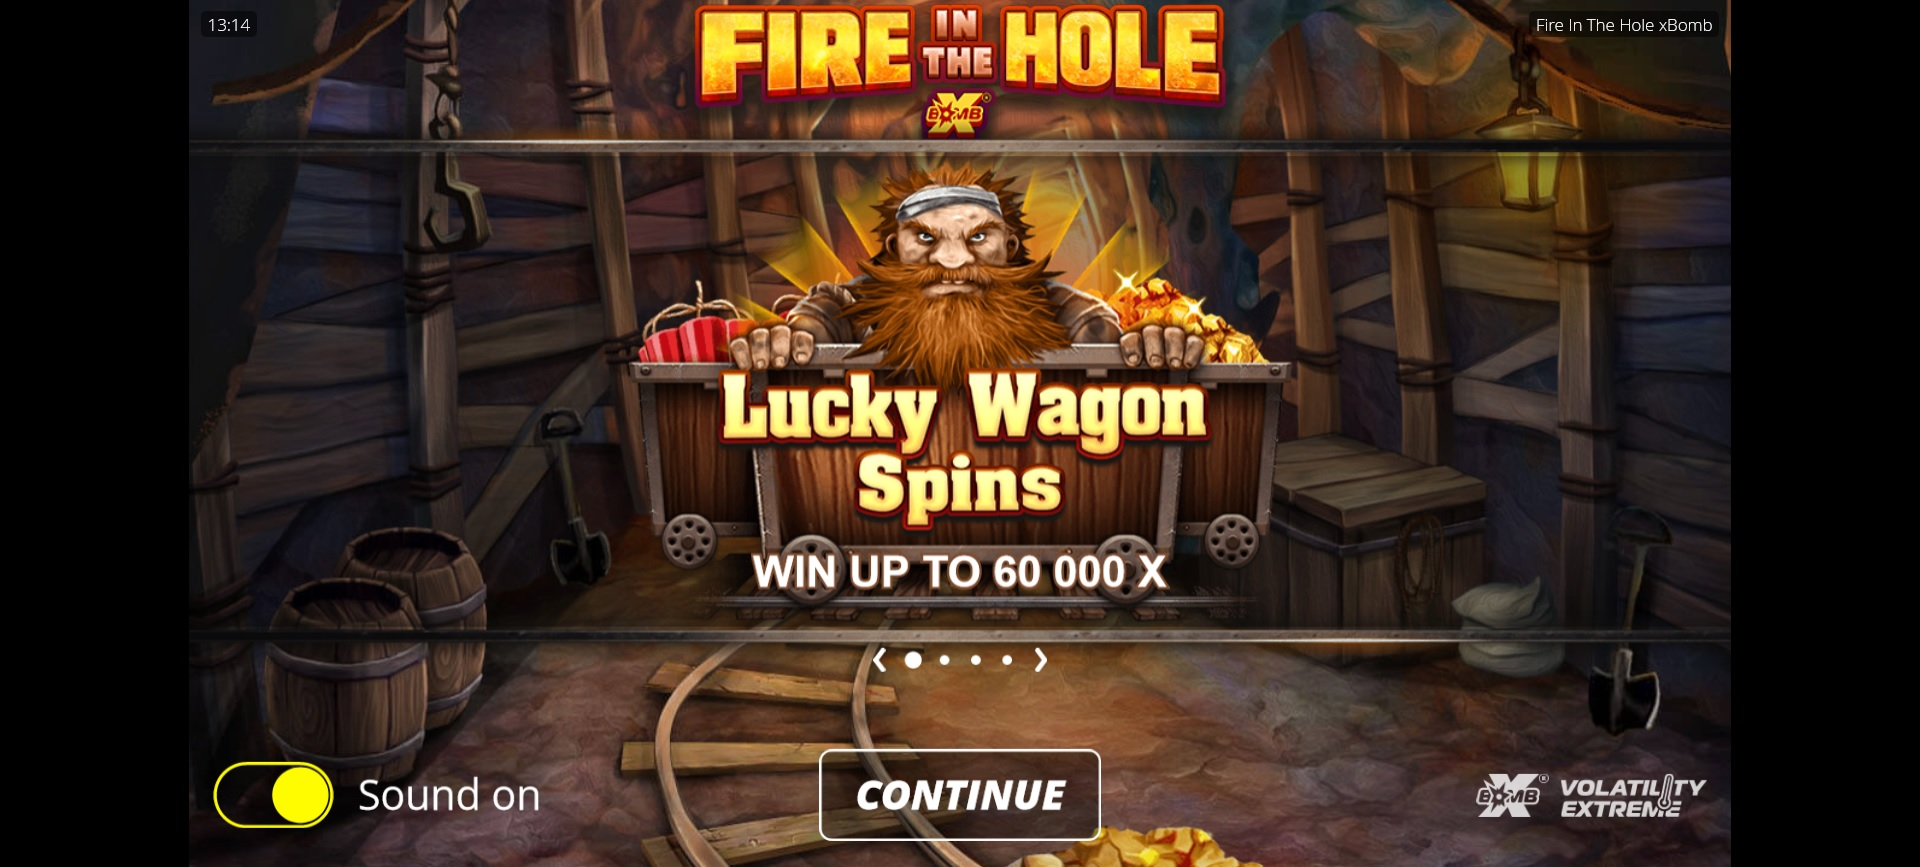 How to win big in Fire in the Hole xBomb – Lucky Wagon Spins feature